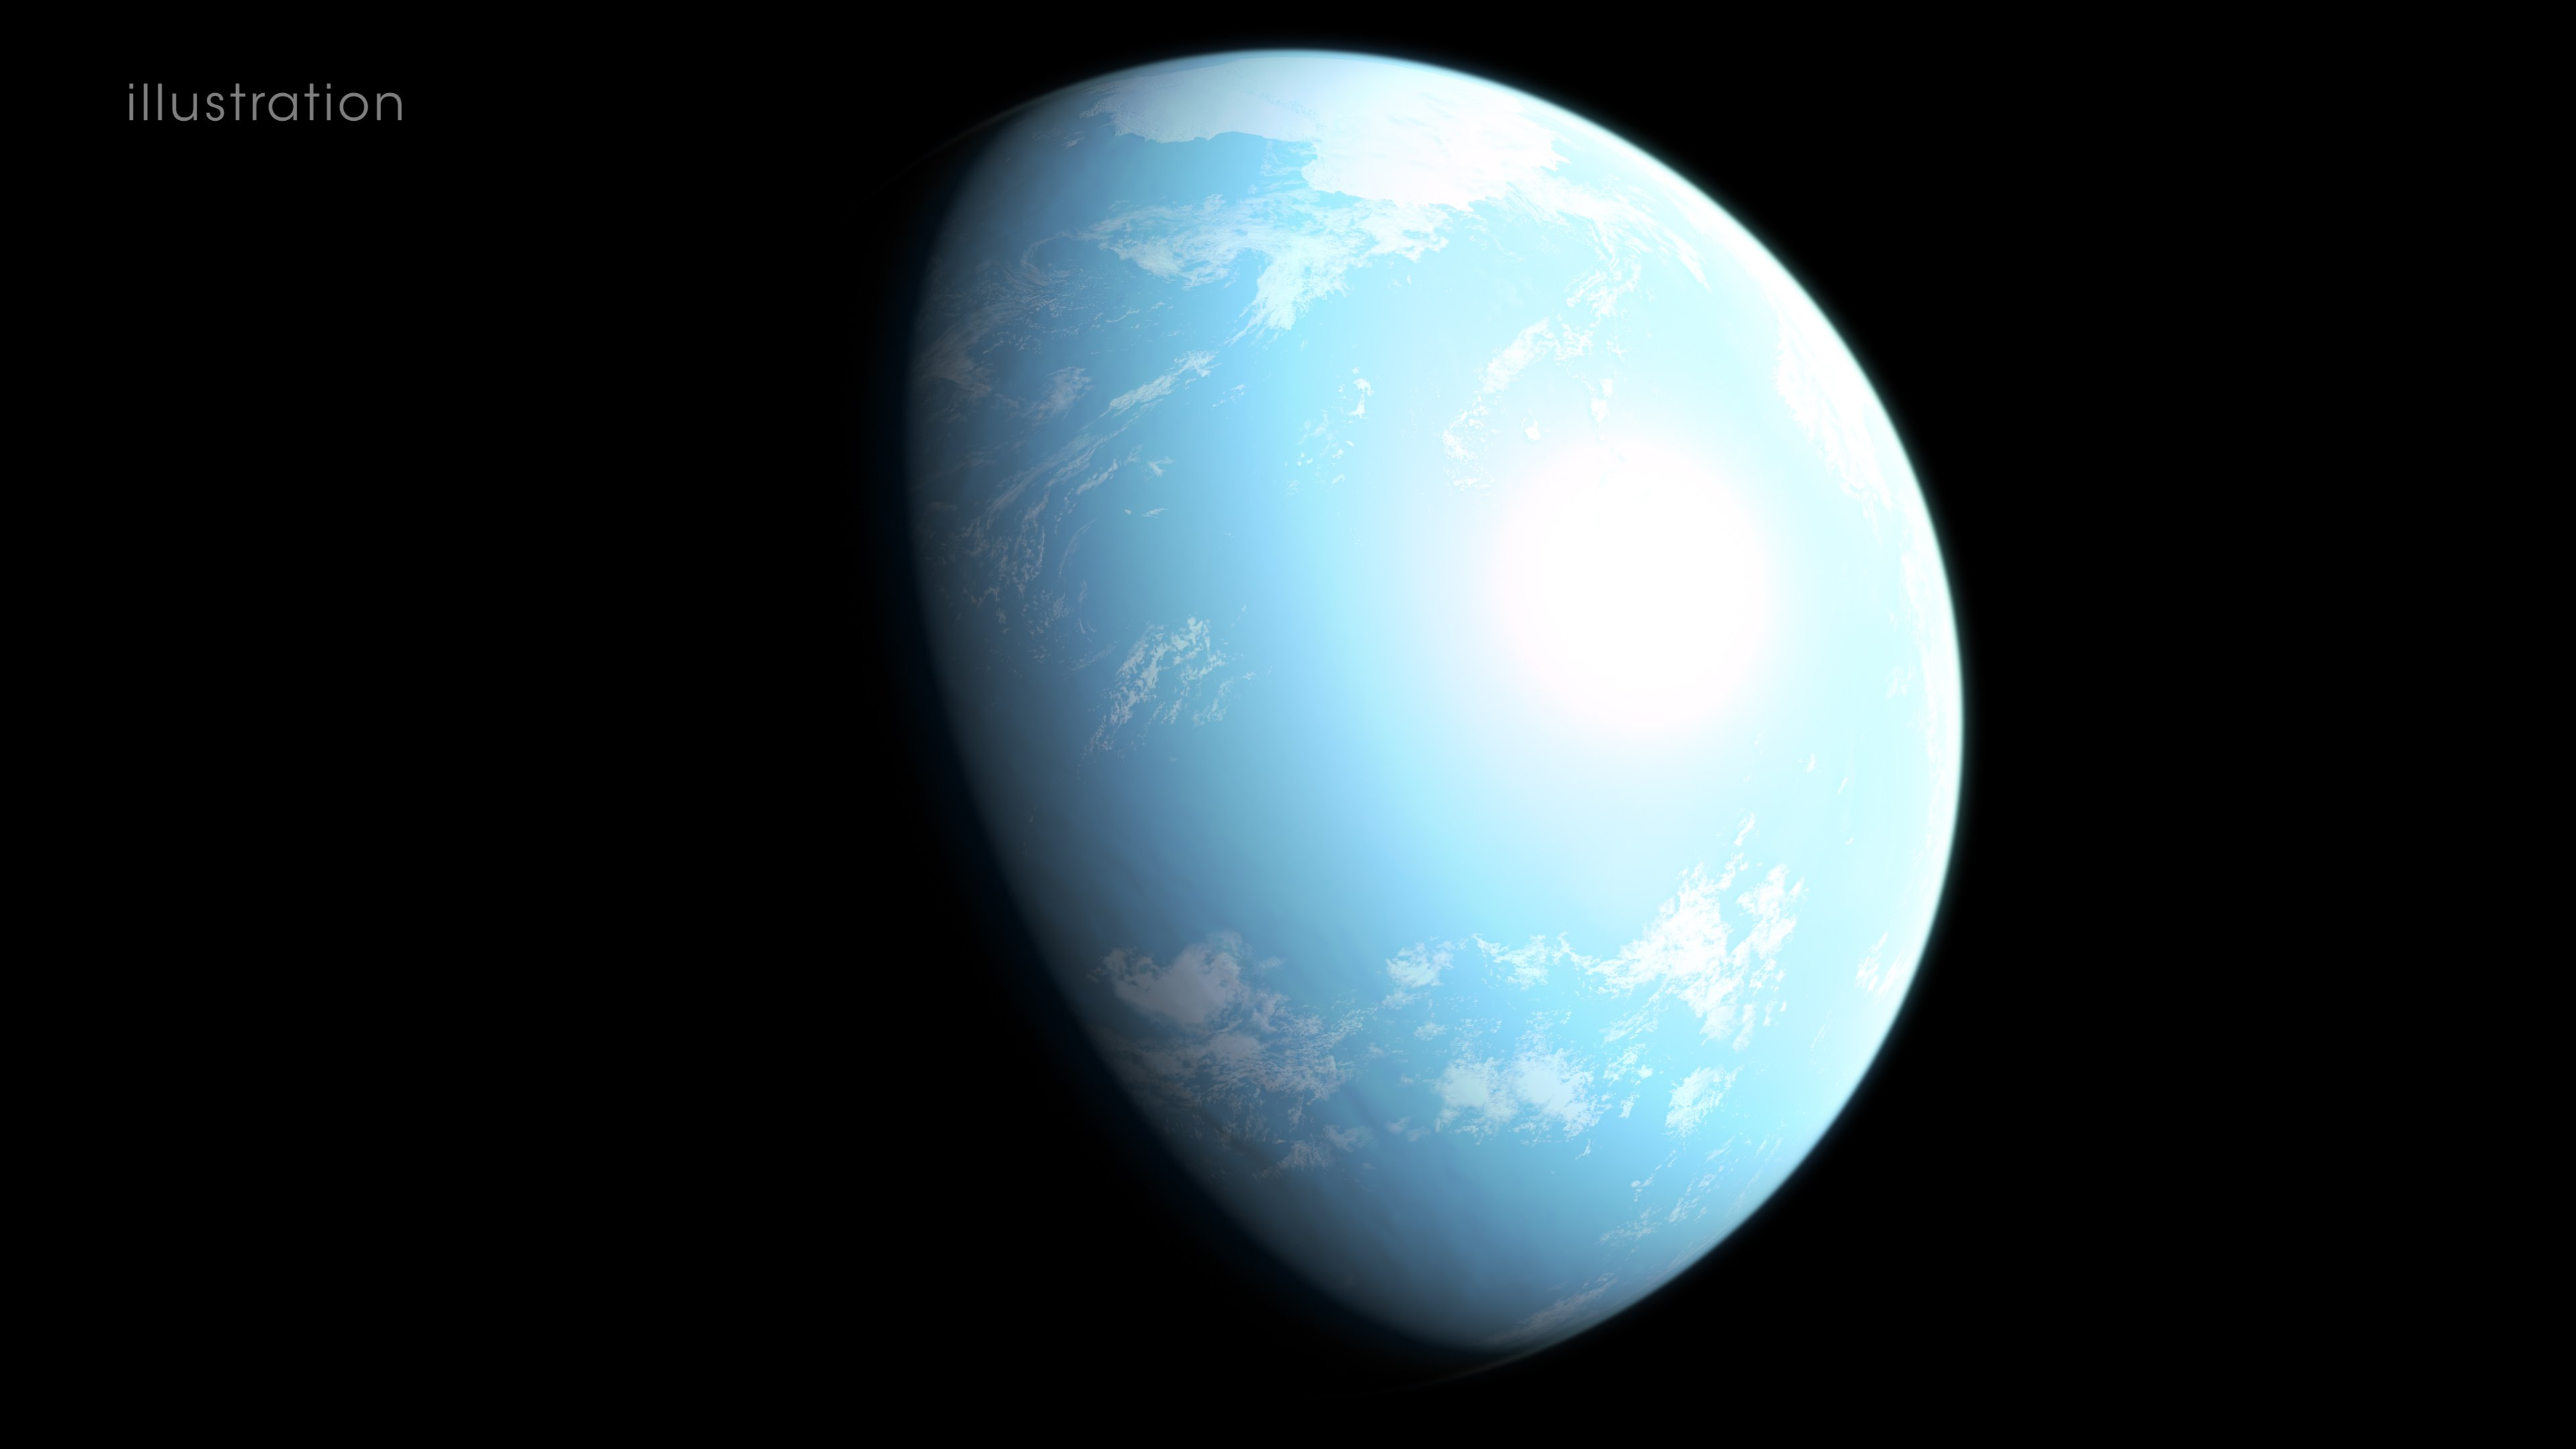 Scientists found the new planet very similar to Earth and it can be a life